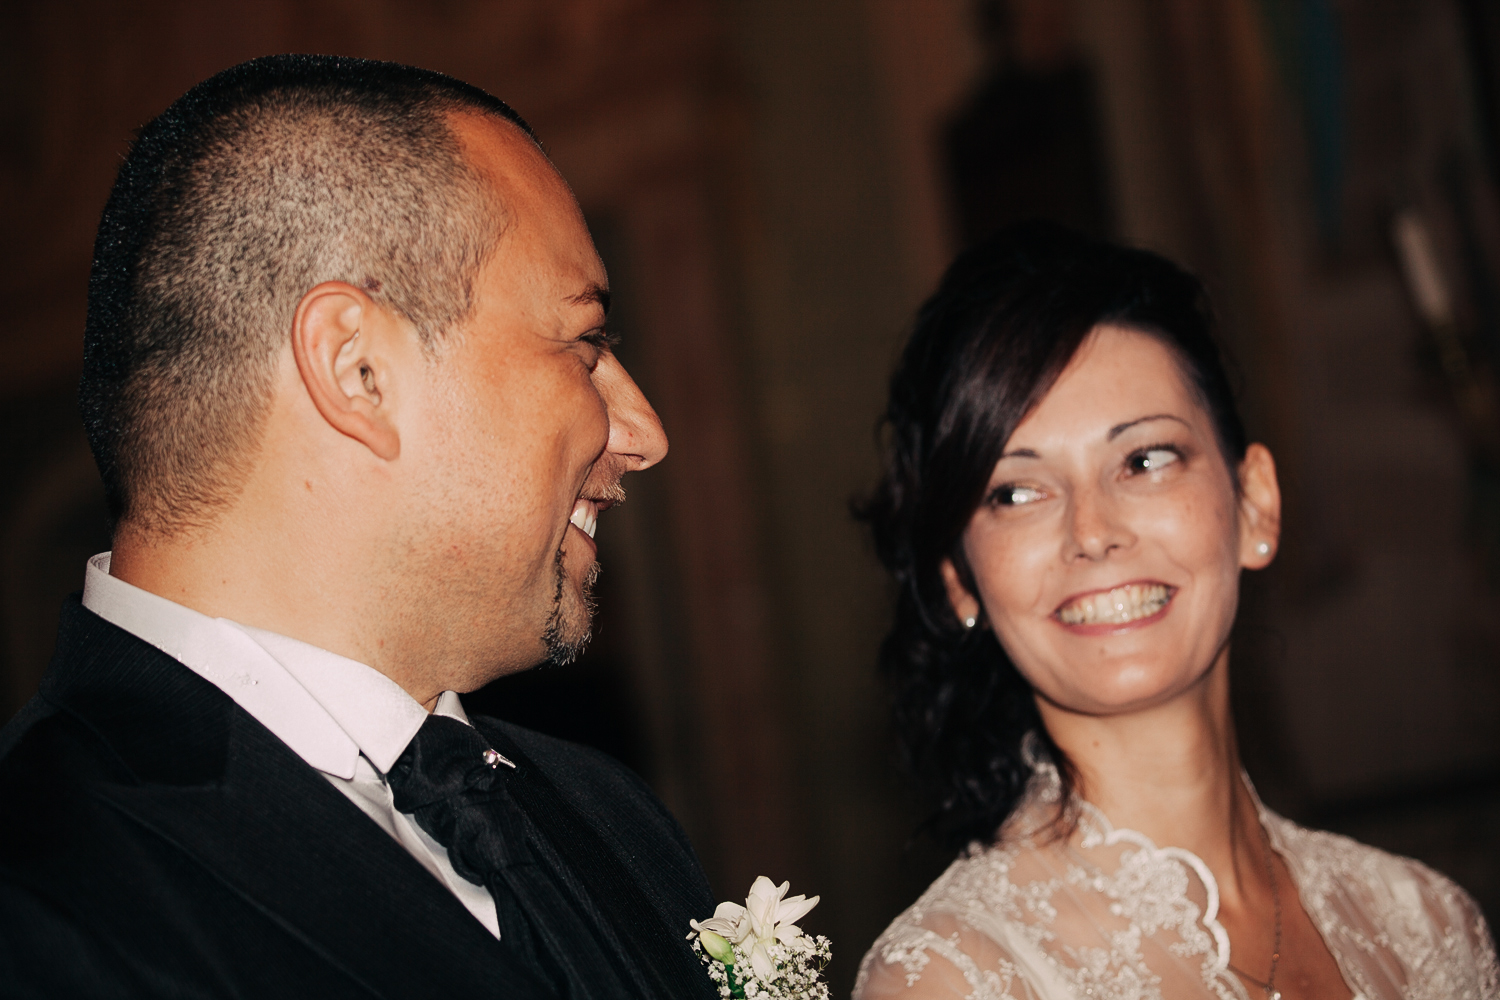 Wedding06_Paola_Meloni_009.jpg